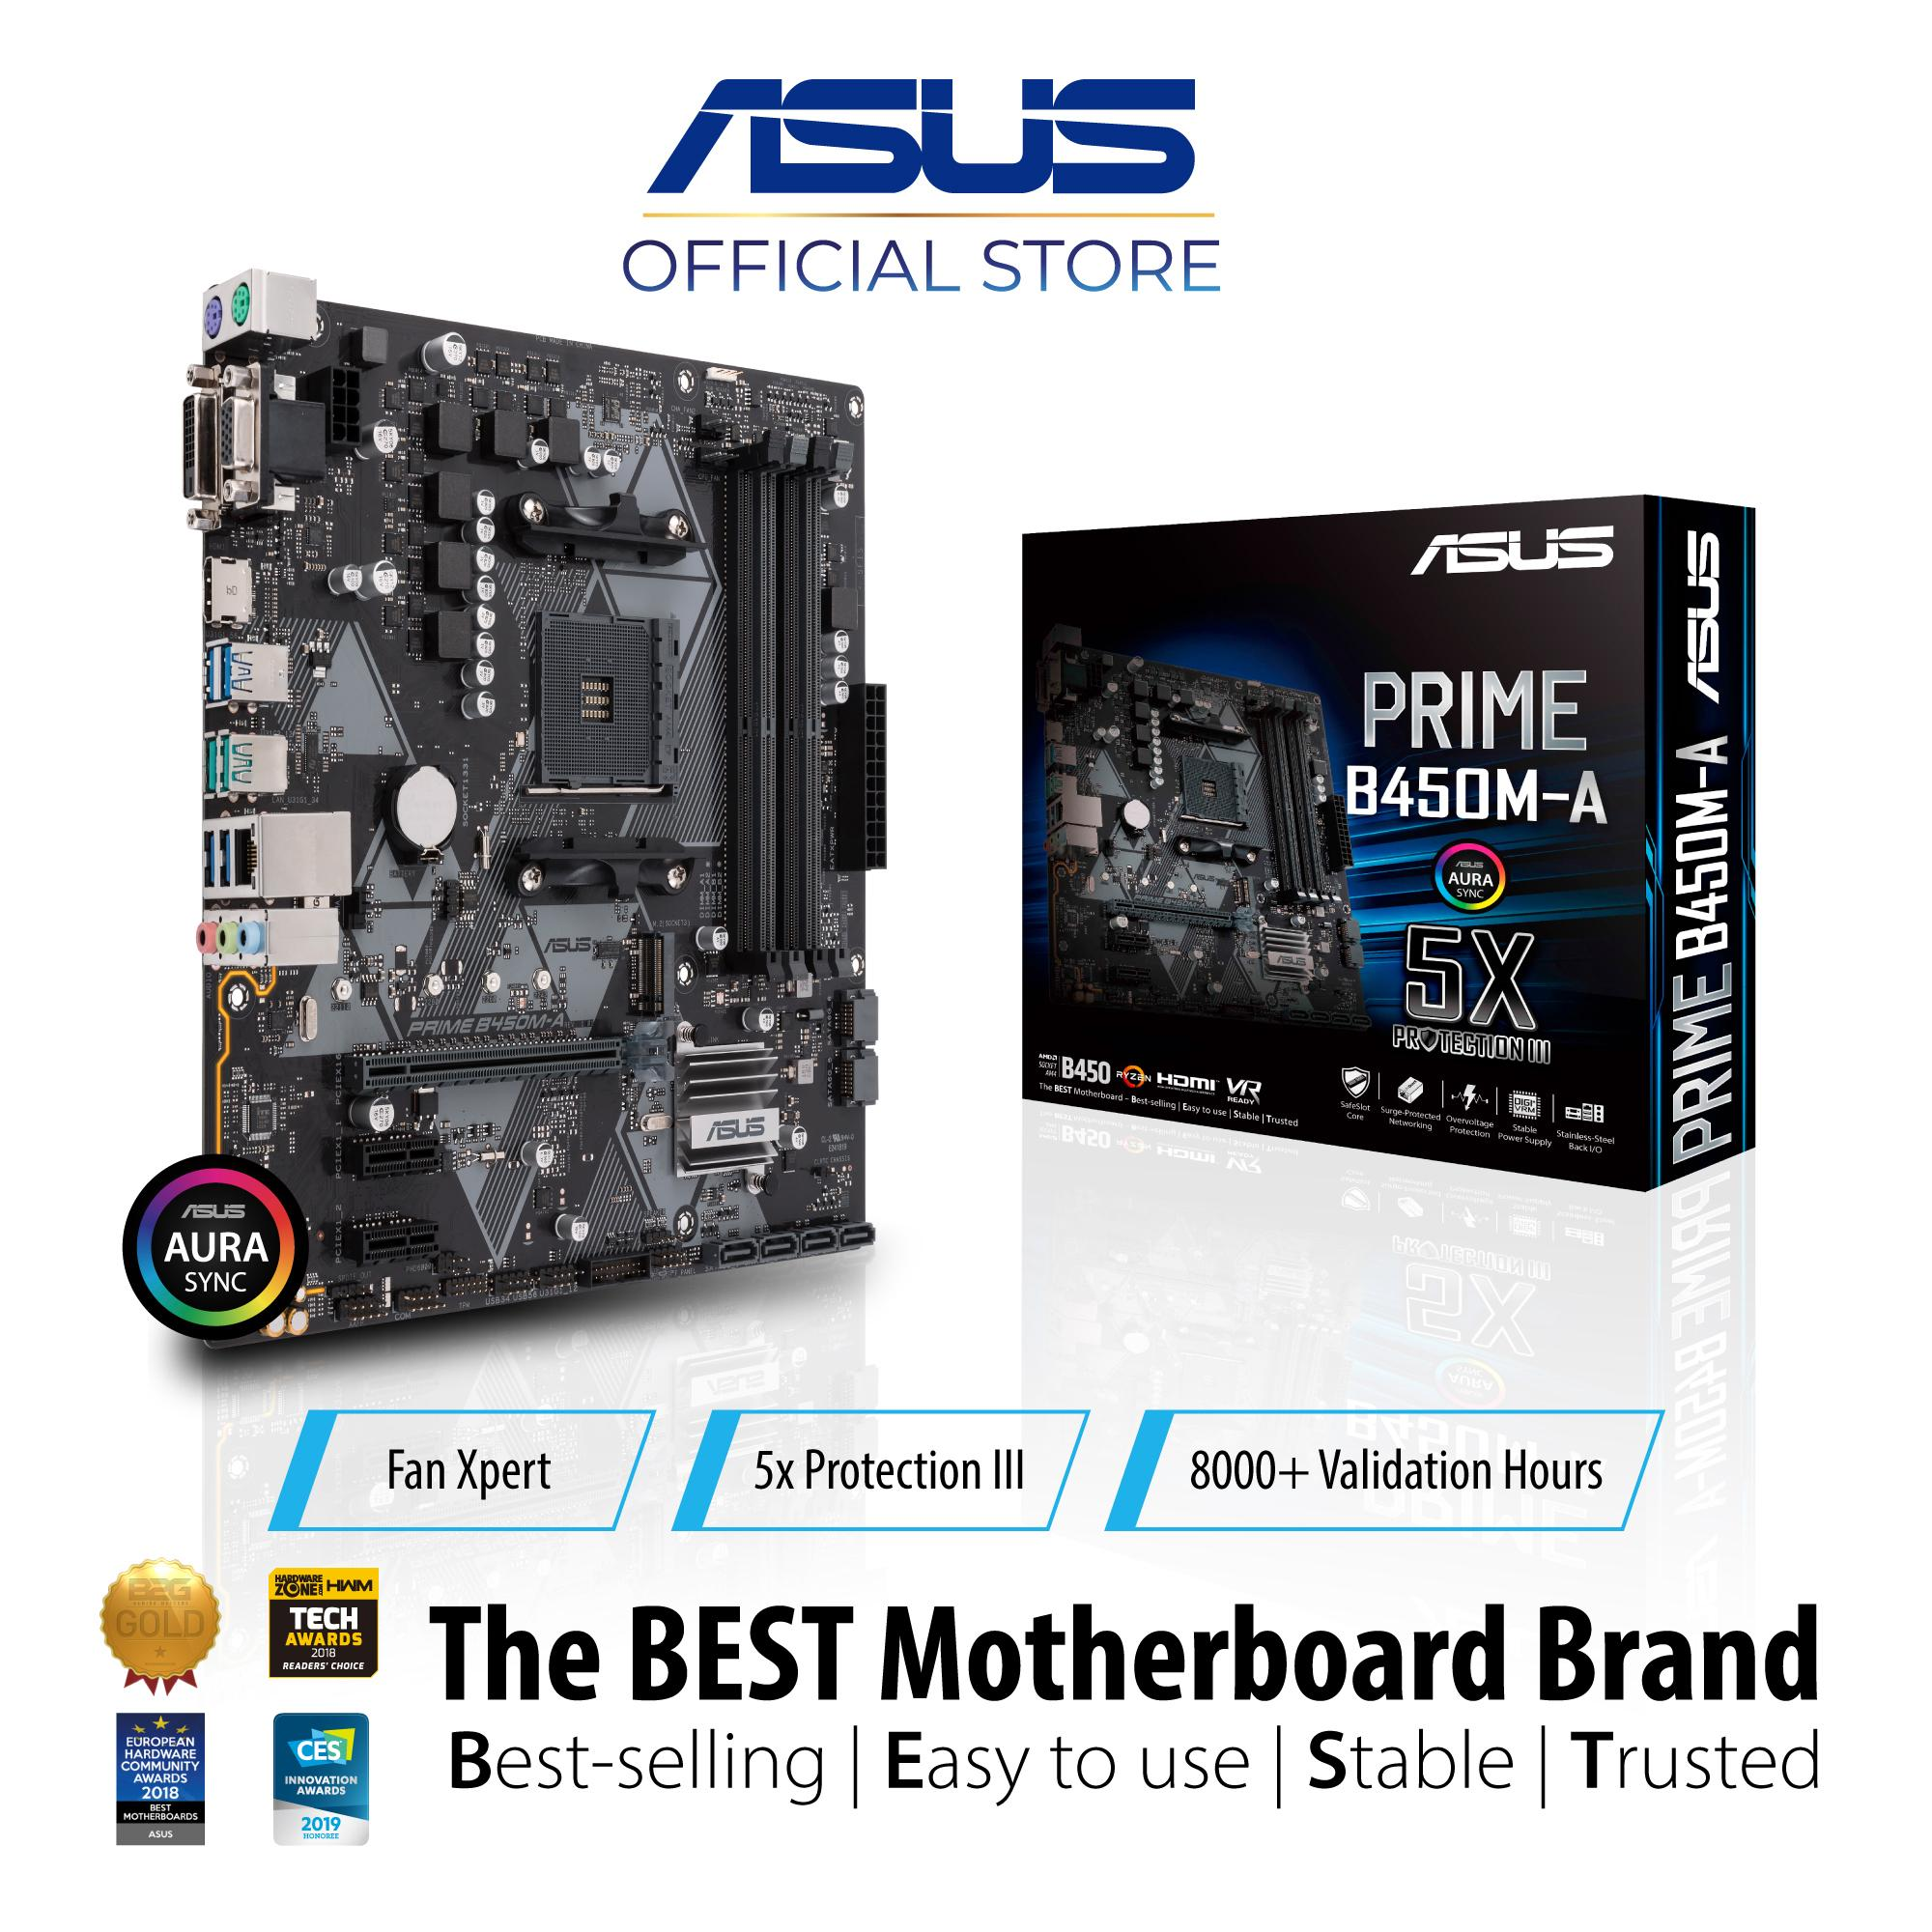 ASUS PRIME B450M-A AMD AM4 mATX motherboard with Aura Sync RGB header, DDR4  3200MHz, M 2, HDMI 2 0b, SATA 6Gbps and USB 3 1 Gen 2